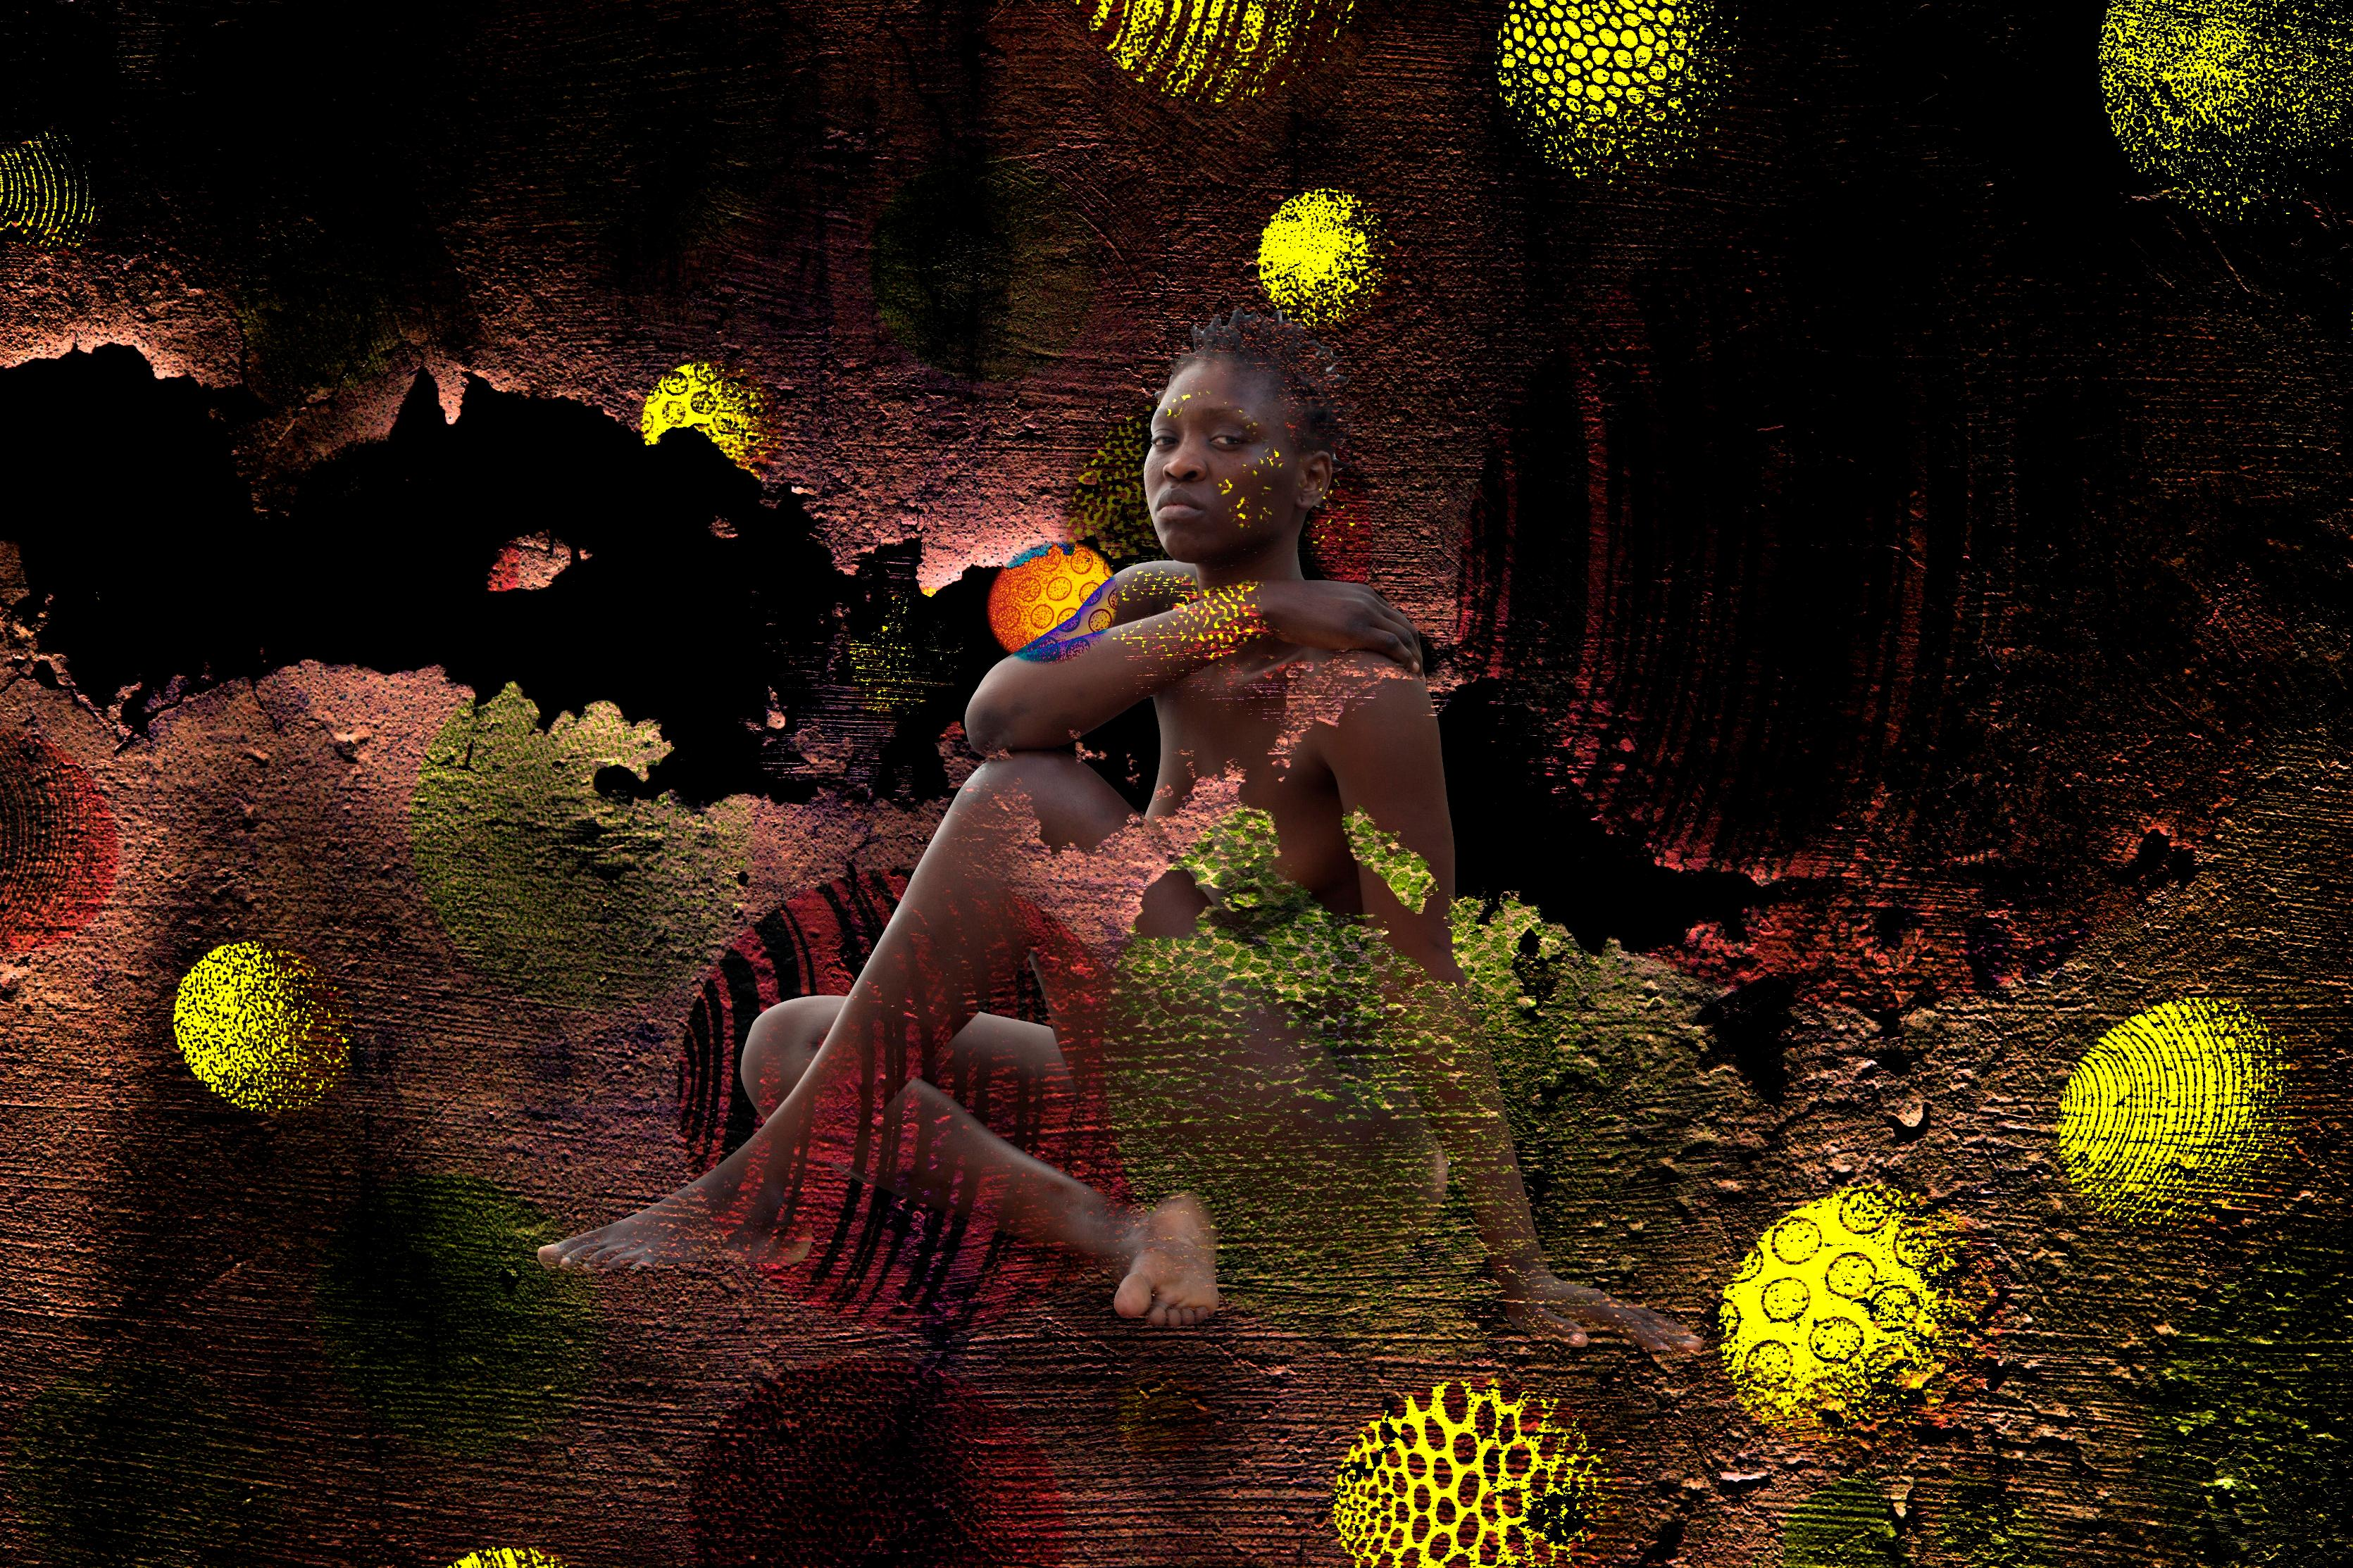 New direction by night - Françoise Benomar, African Contemporary Photography